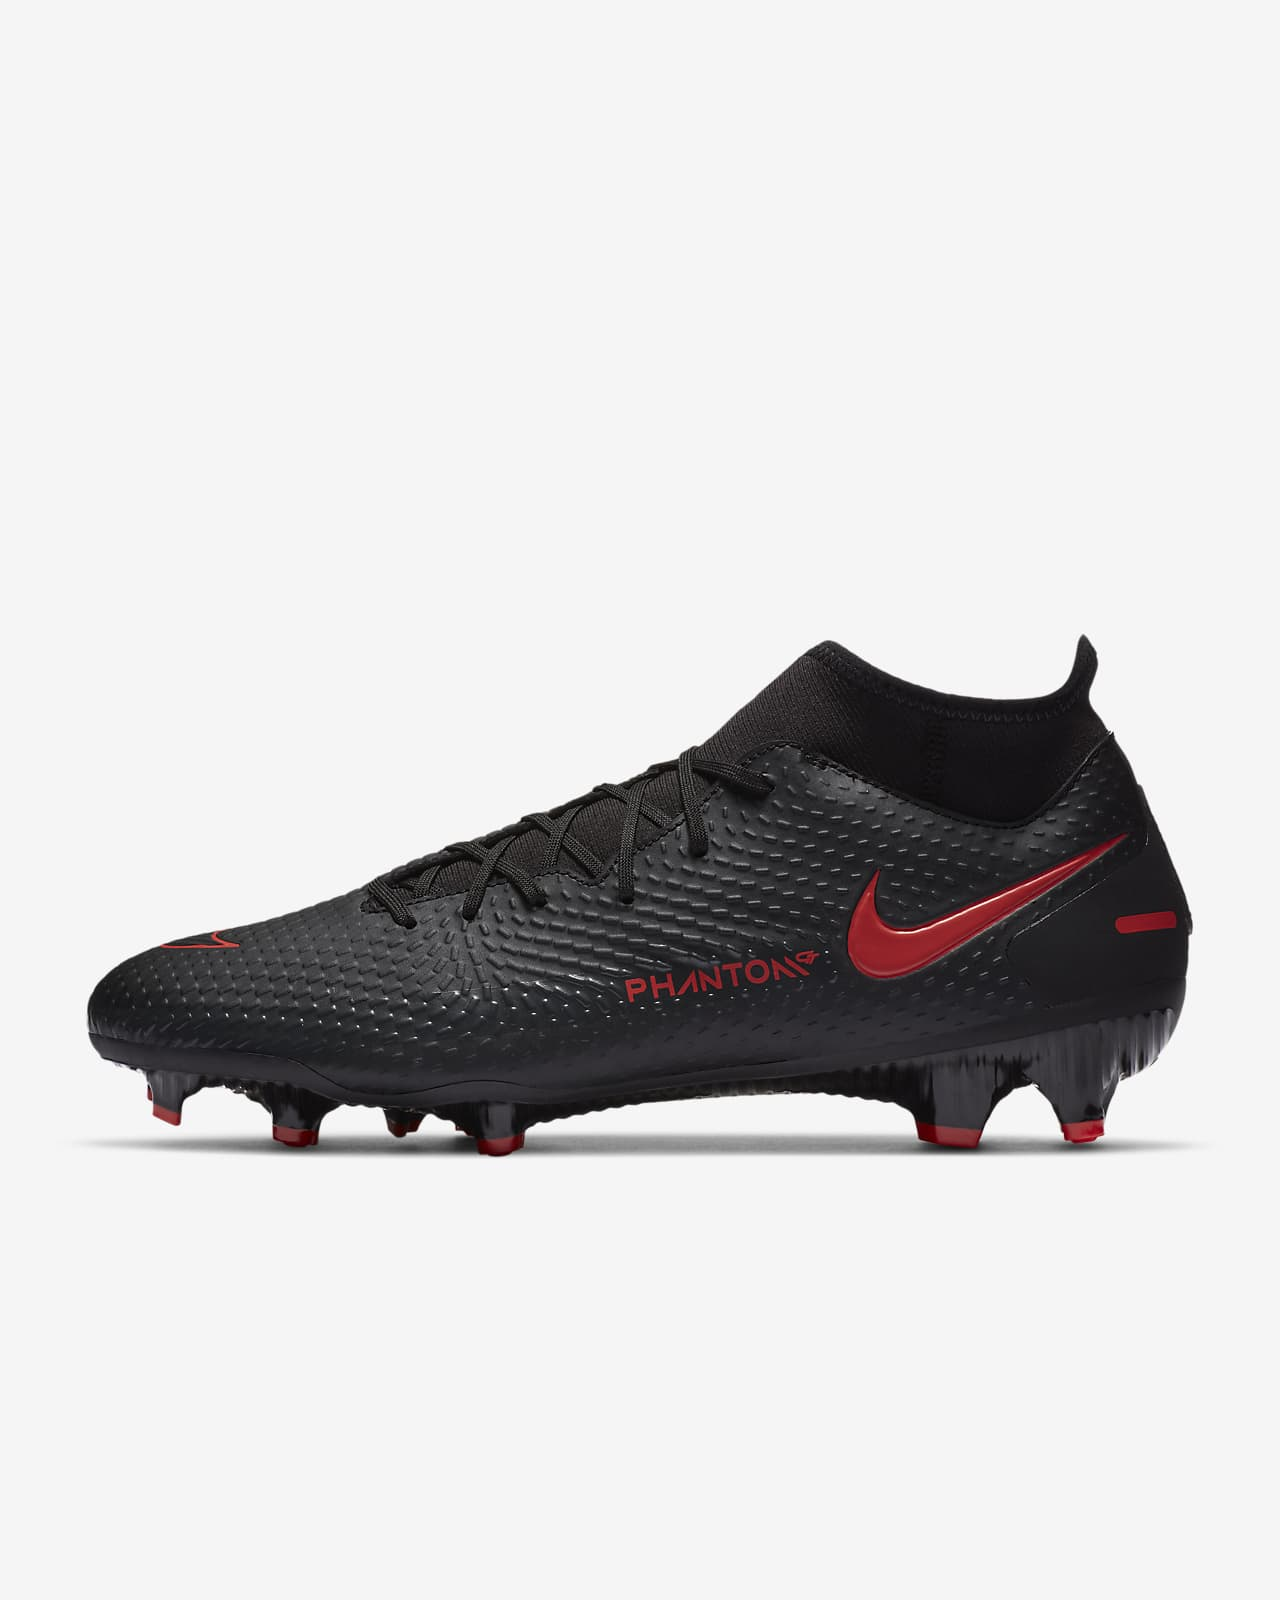 Chaussure de football multi-surfaces à crampons Nike Phantom GT Academy Dynamic Fit MG